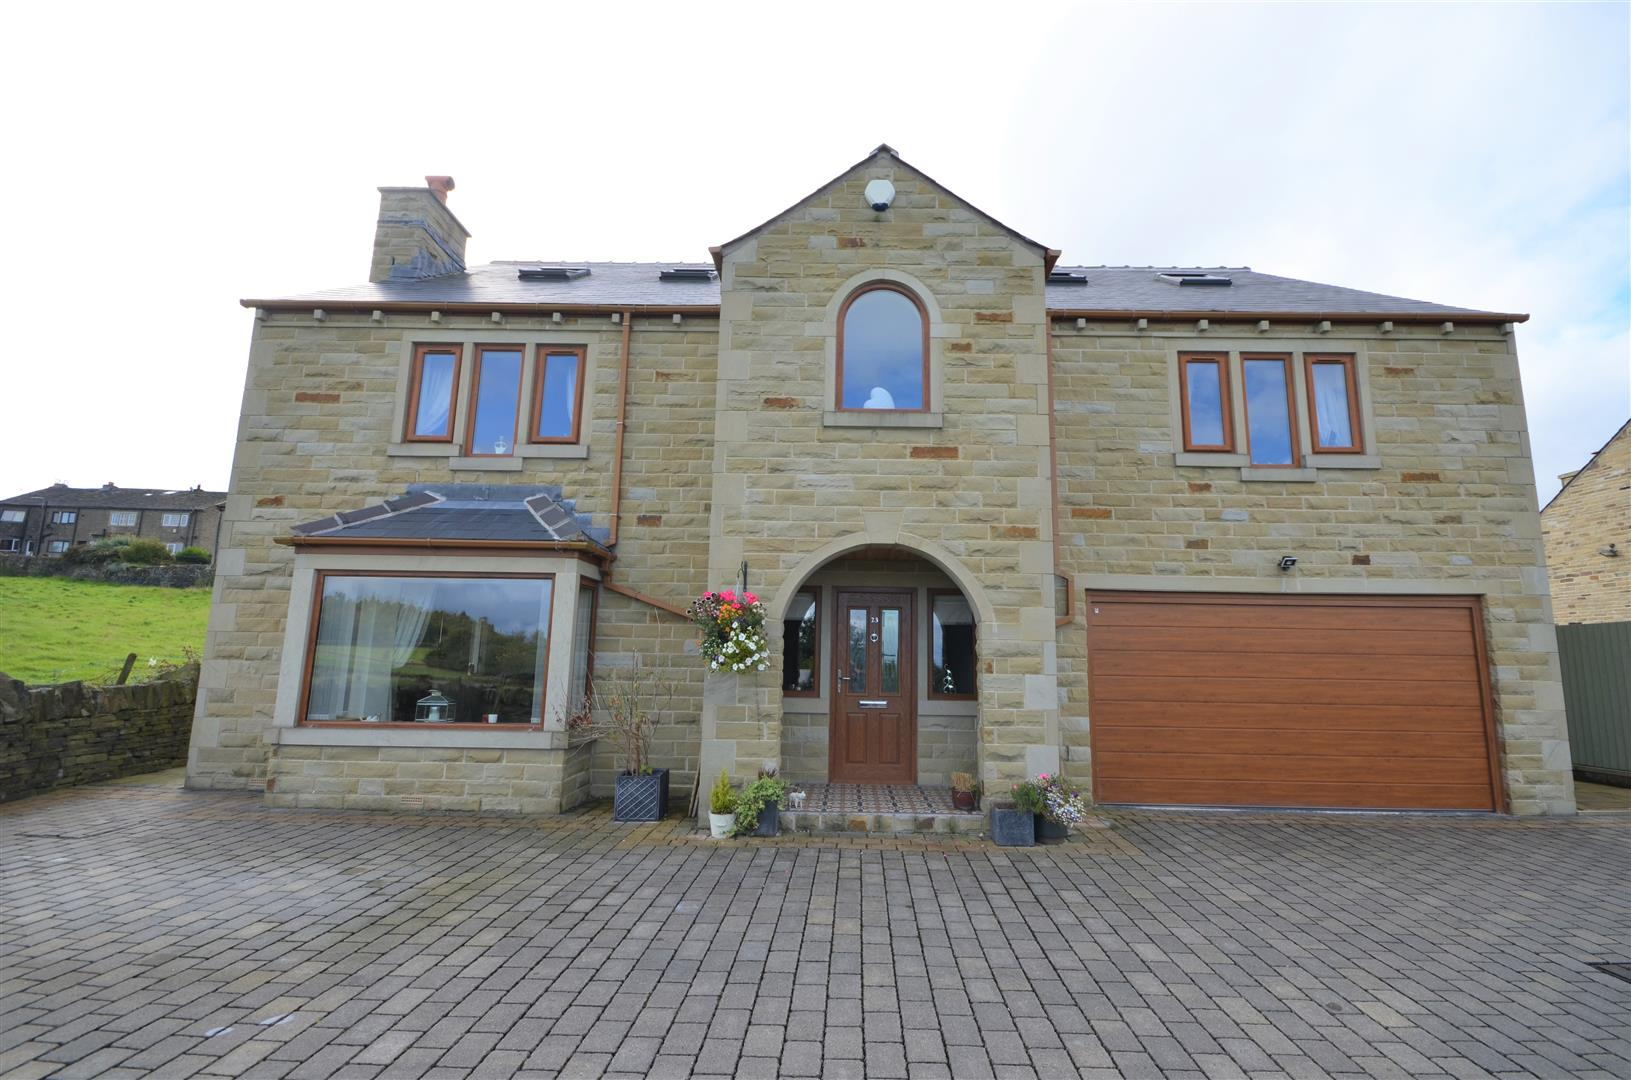 Last House, 23 Marsh Lane, Southowram, HX3 9NR